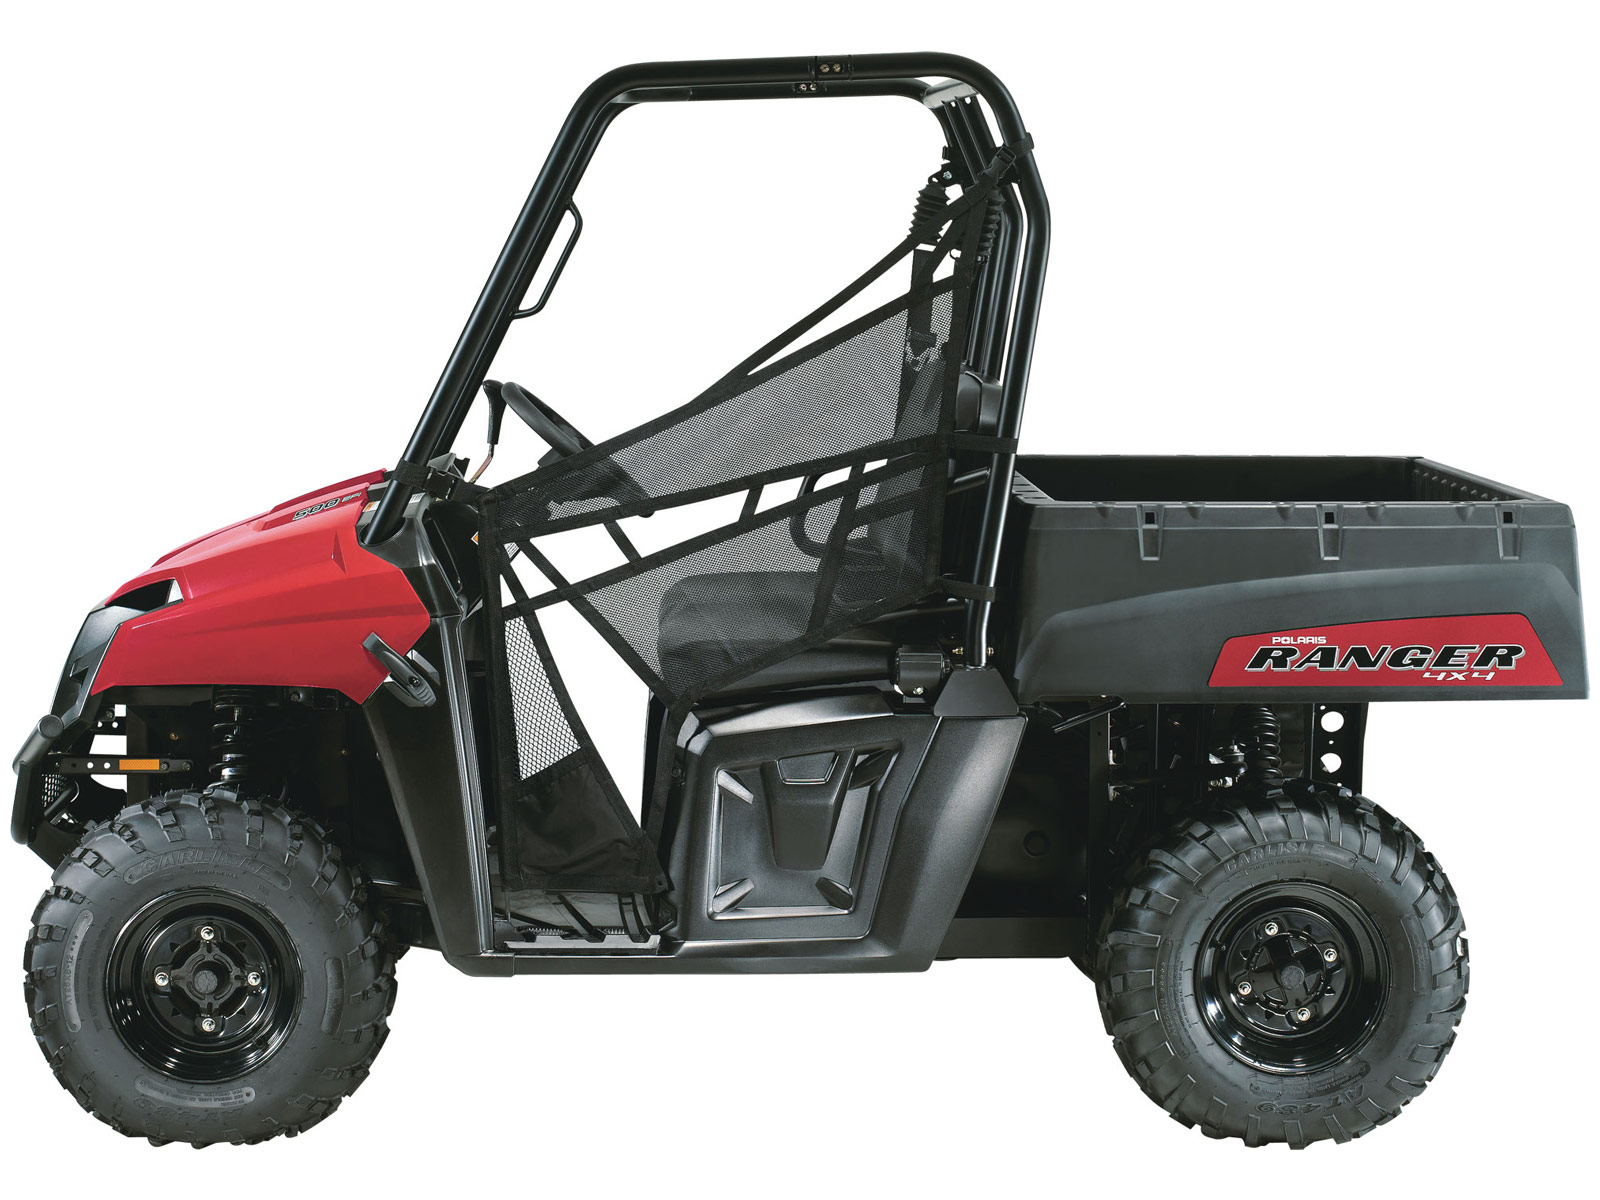 2012 polaris ranger 500efi insurance information. Black Bedroom Furniture Sets. Home Design Ideas